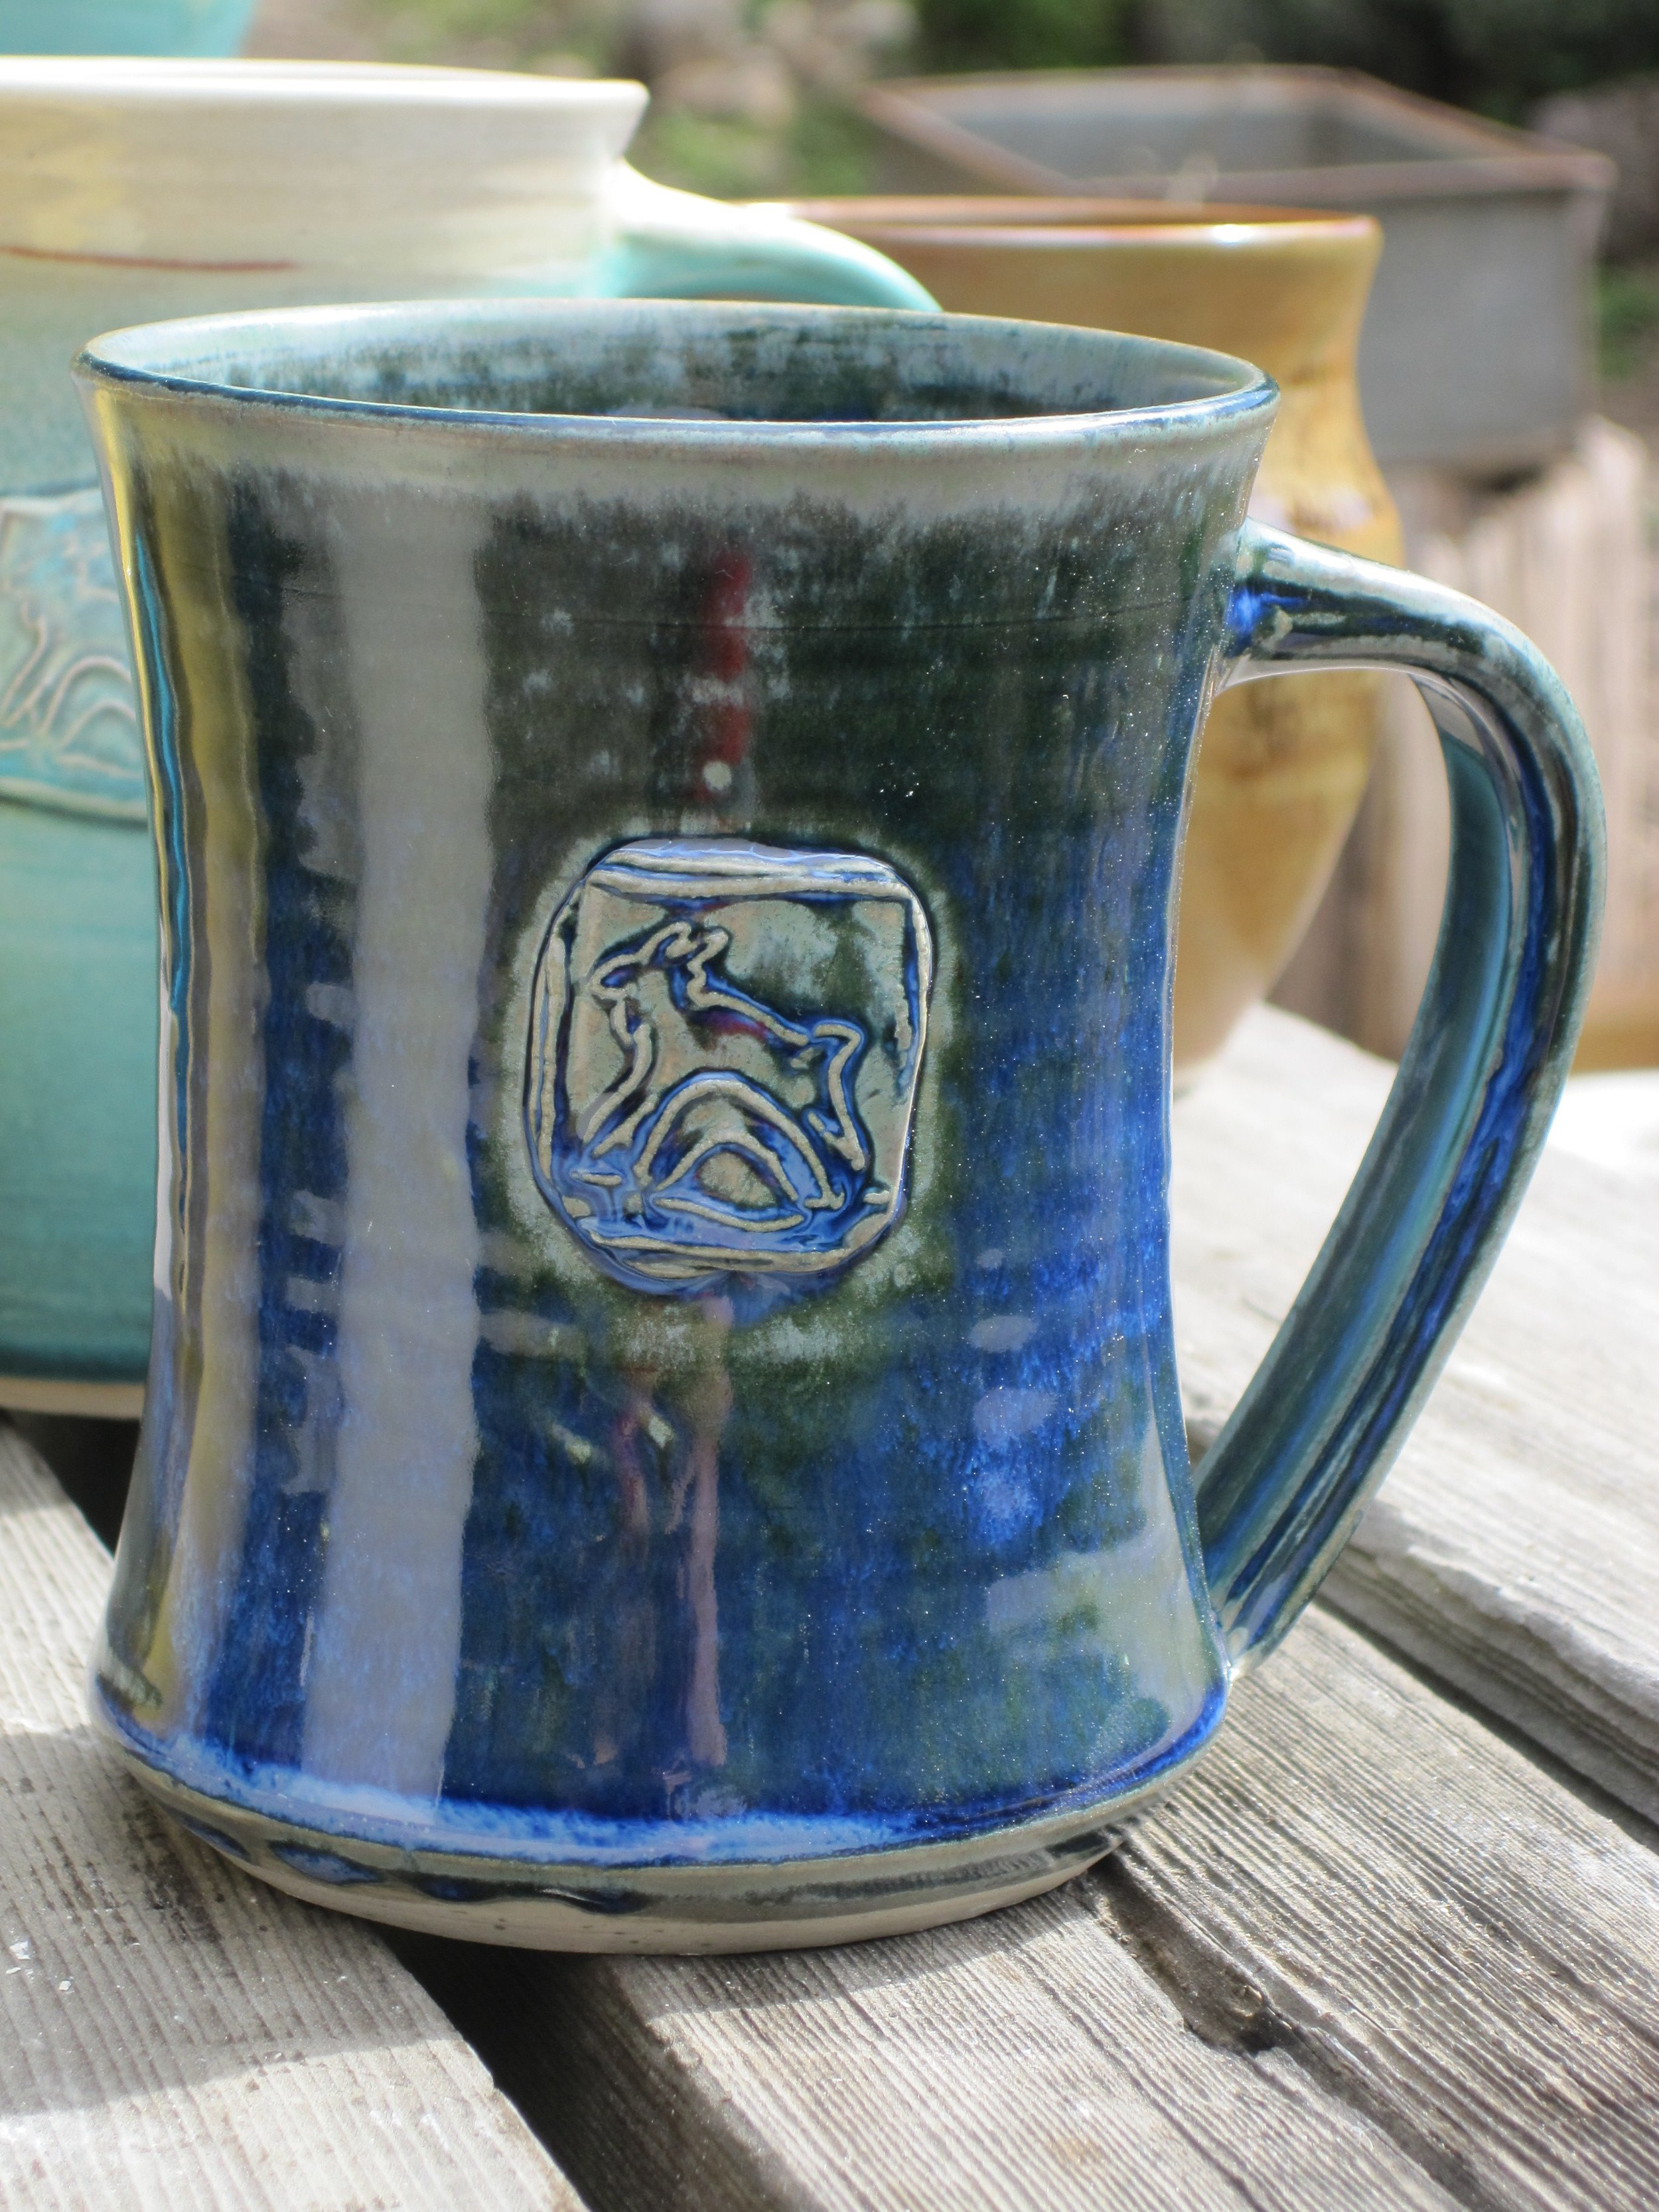 Harley Farms jumpy goat logo mugs